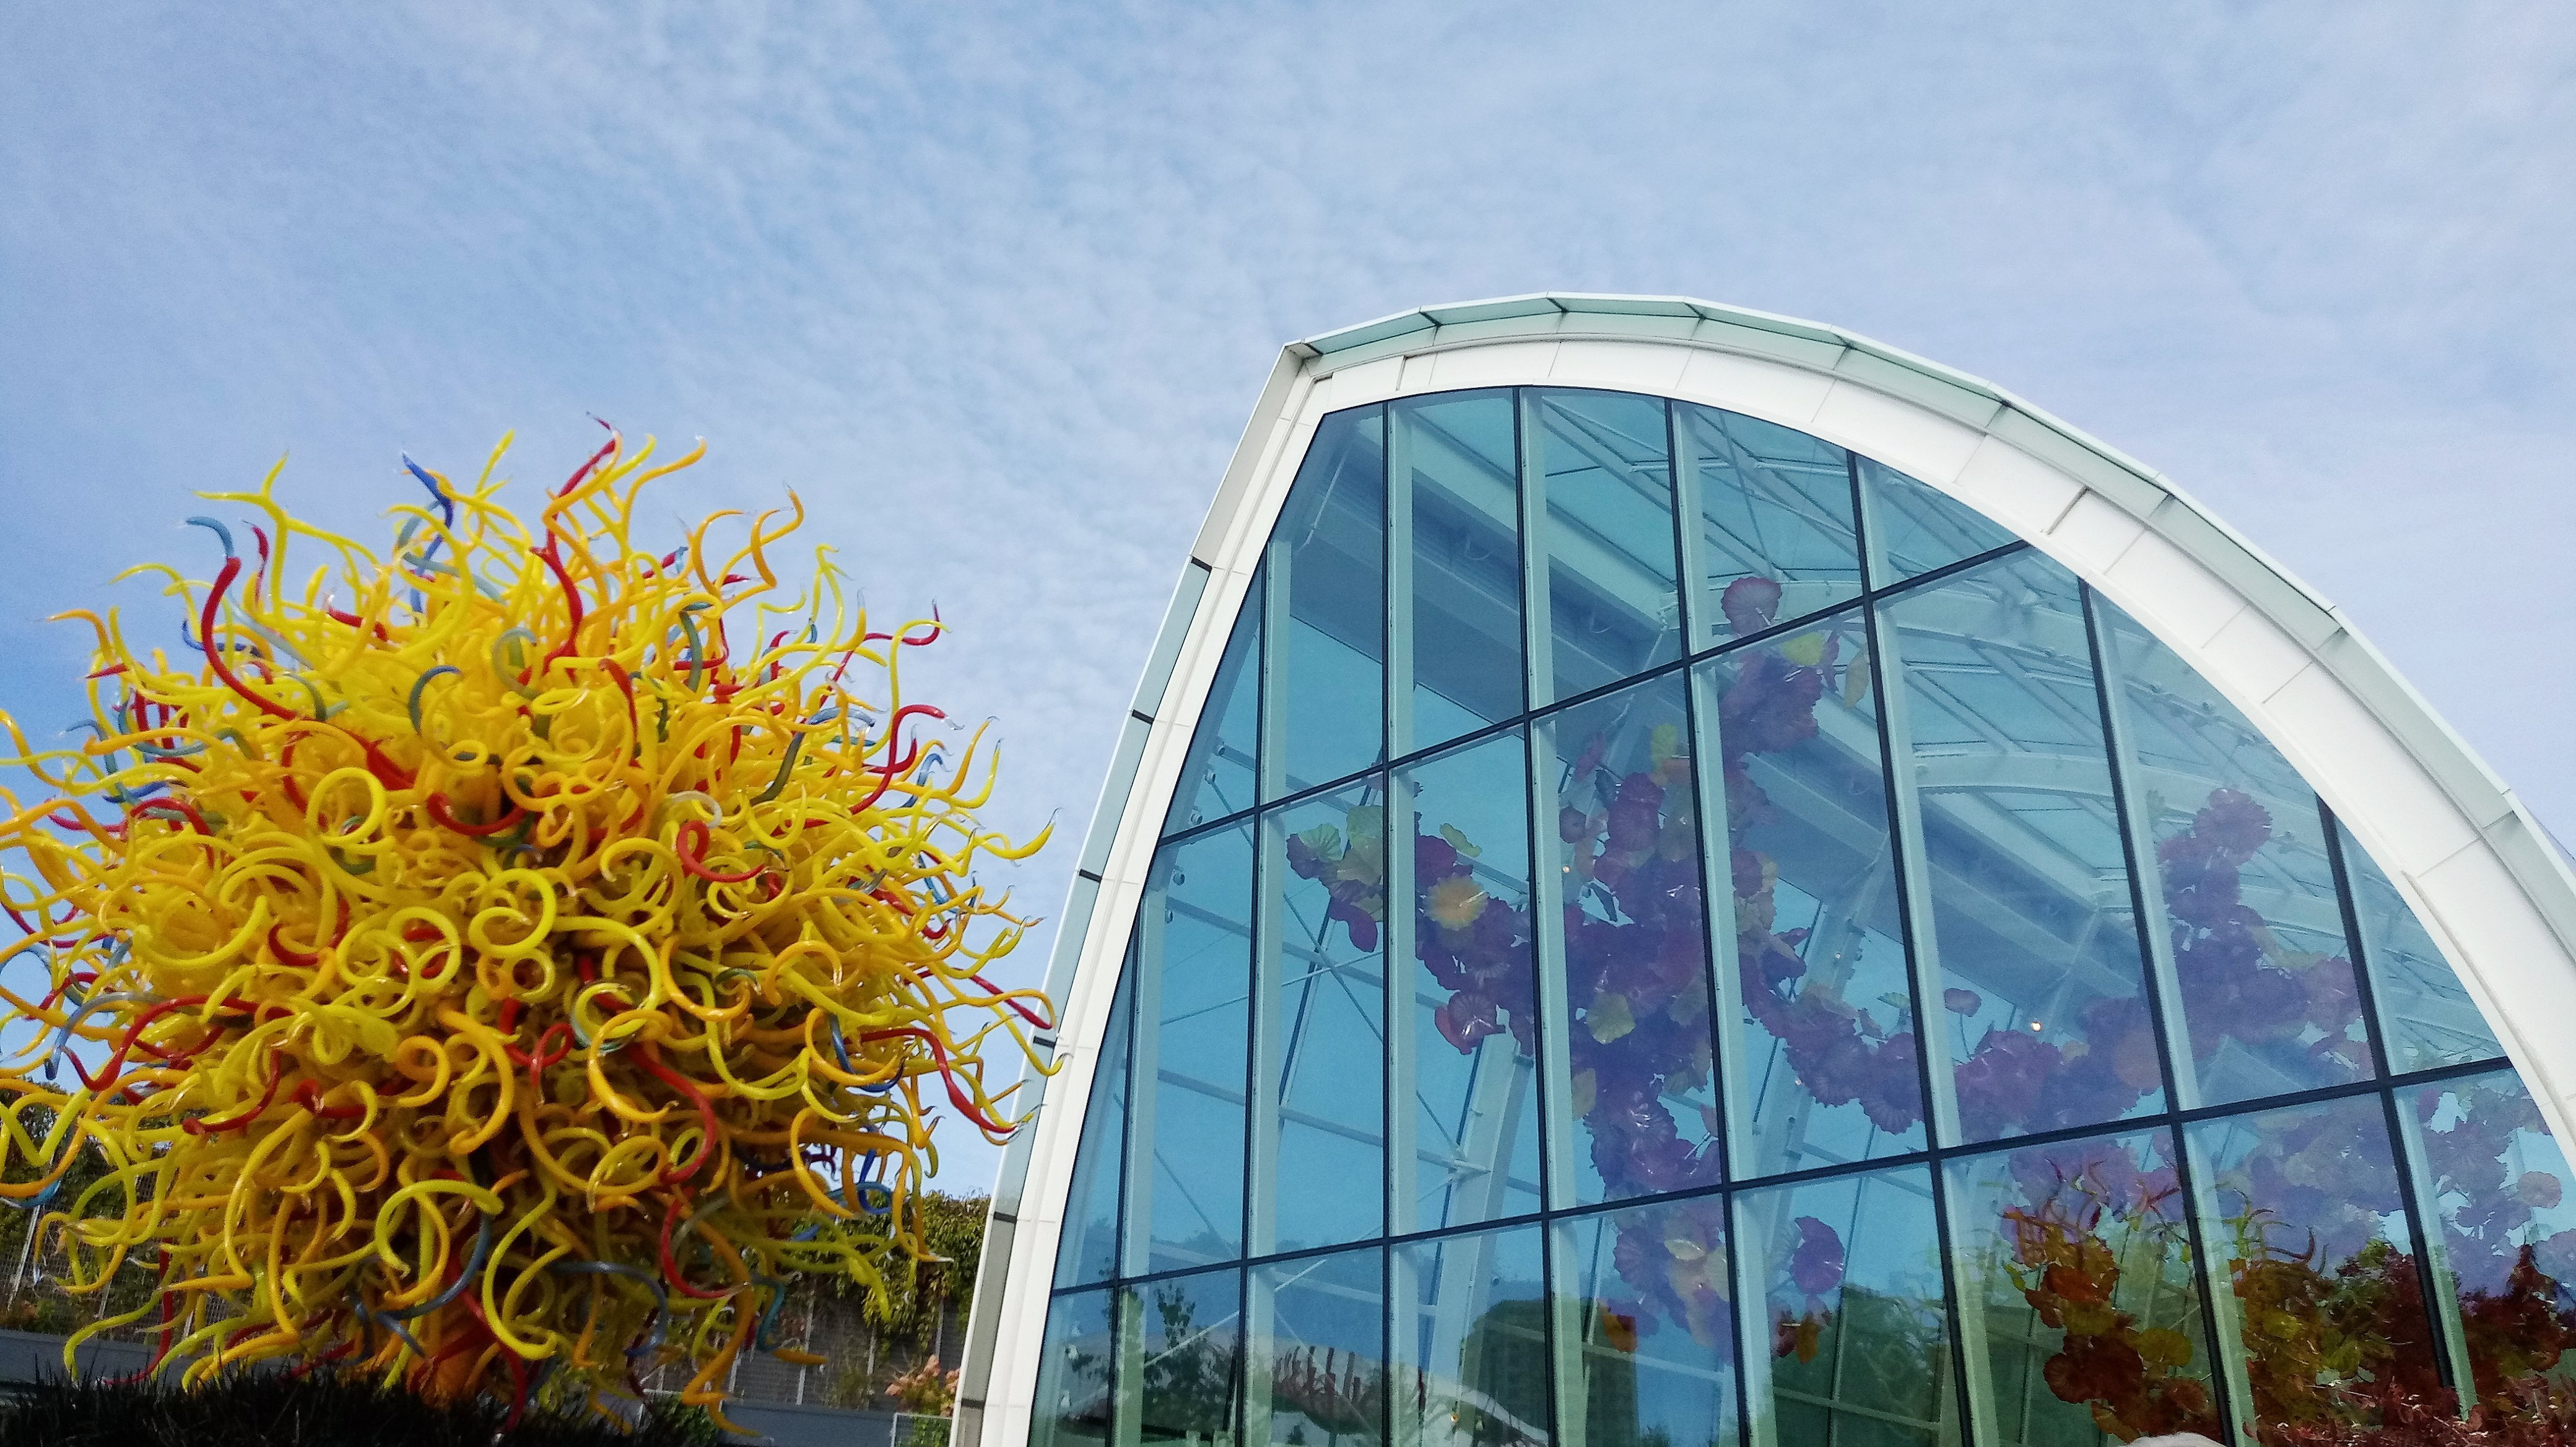 Seattle Travels - Chihuly Glass Museum